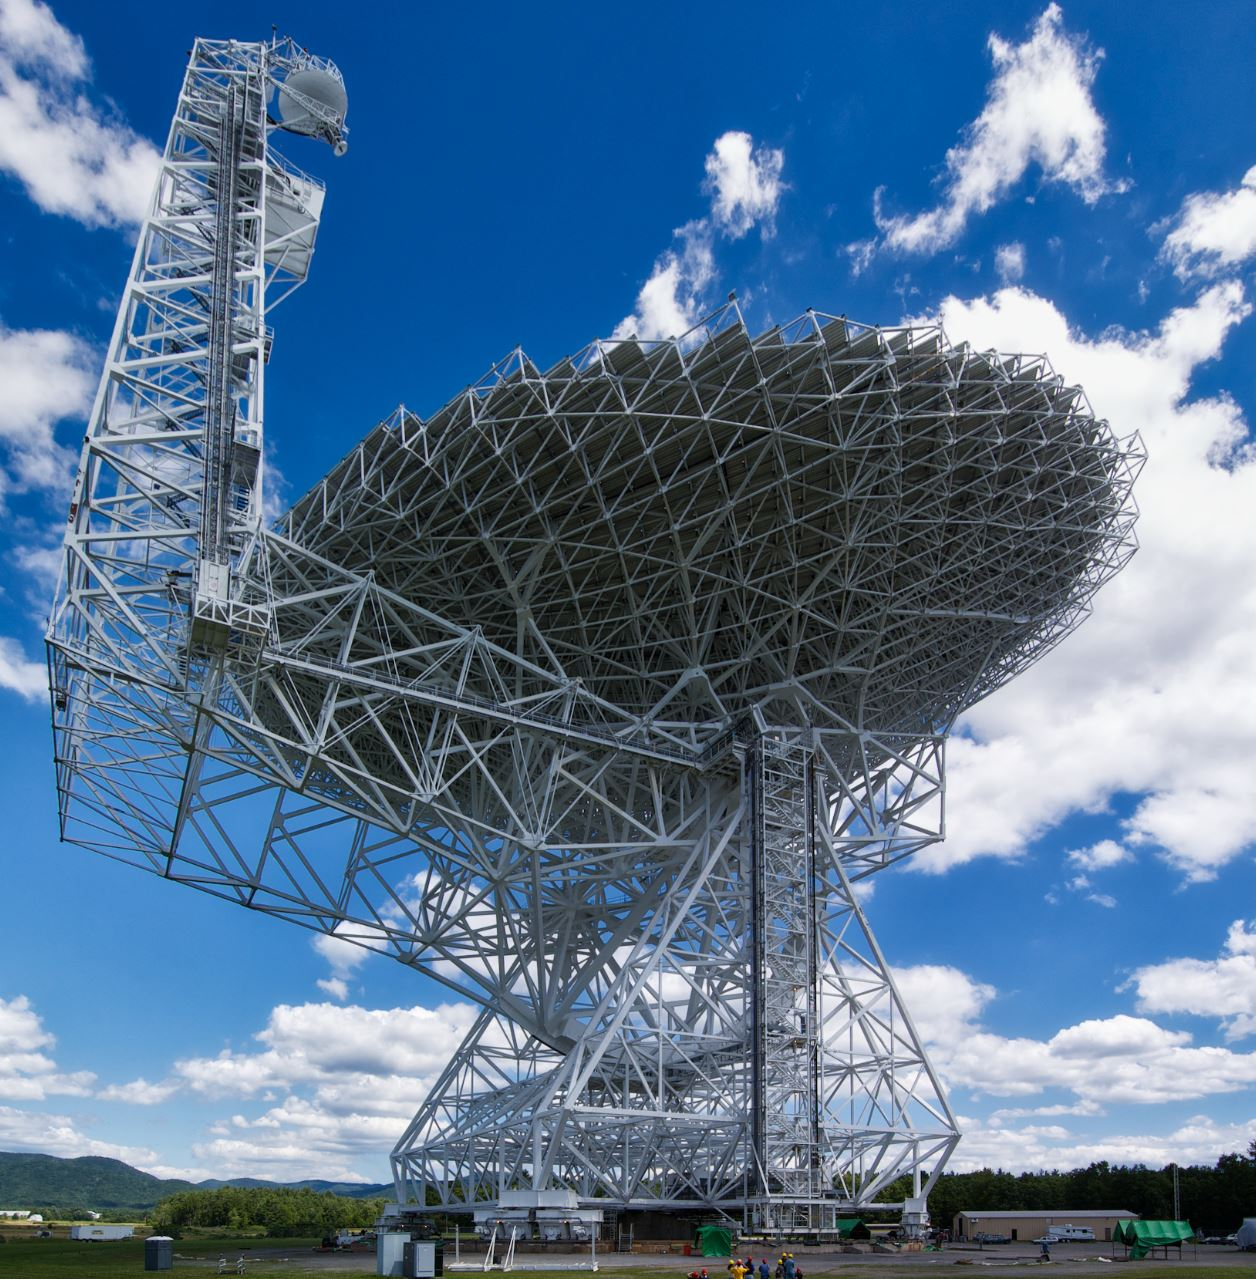 A 100 diameter land based radio telescope located in Green Bank - Image Credits:  Geremia via Wikimedia Commons  -  HDR tune by Universal-Sci  (click to enlarge)